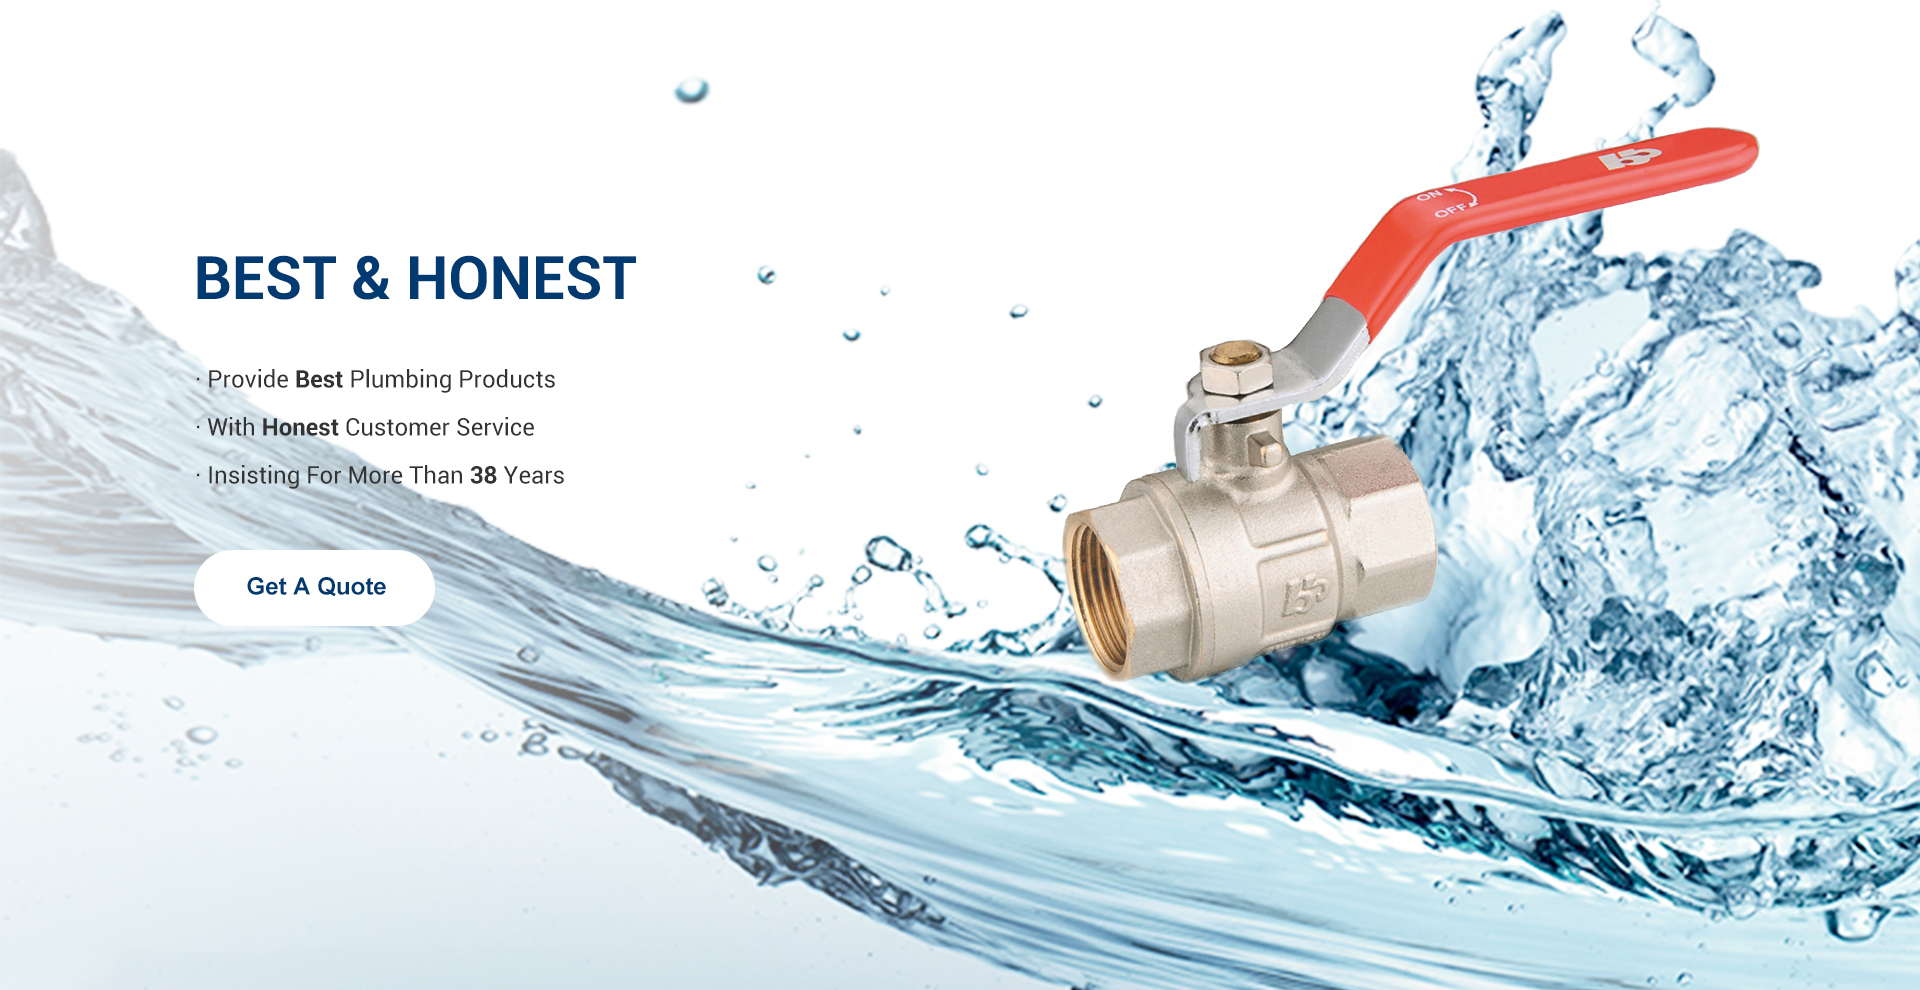 Best & Honest · Provide Best Plumbing Products · With Honest Customer Service · Insisting for More than 38 Years